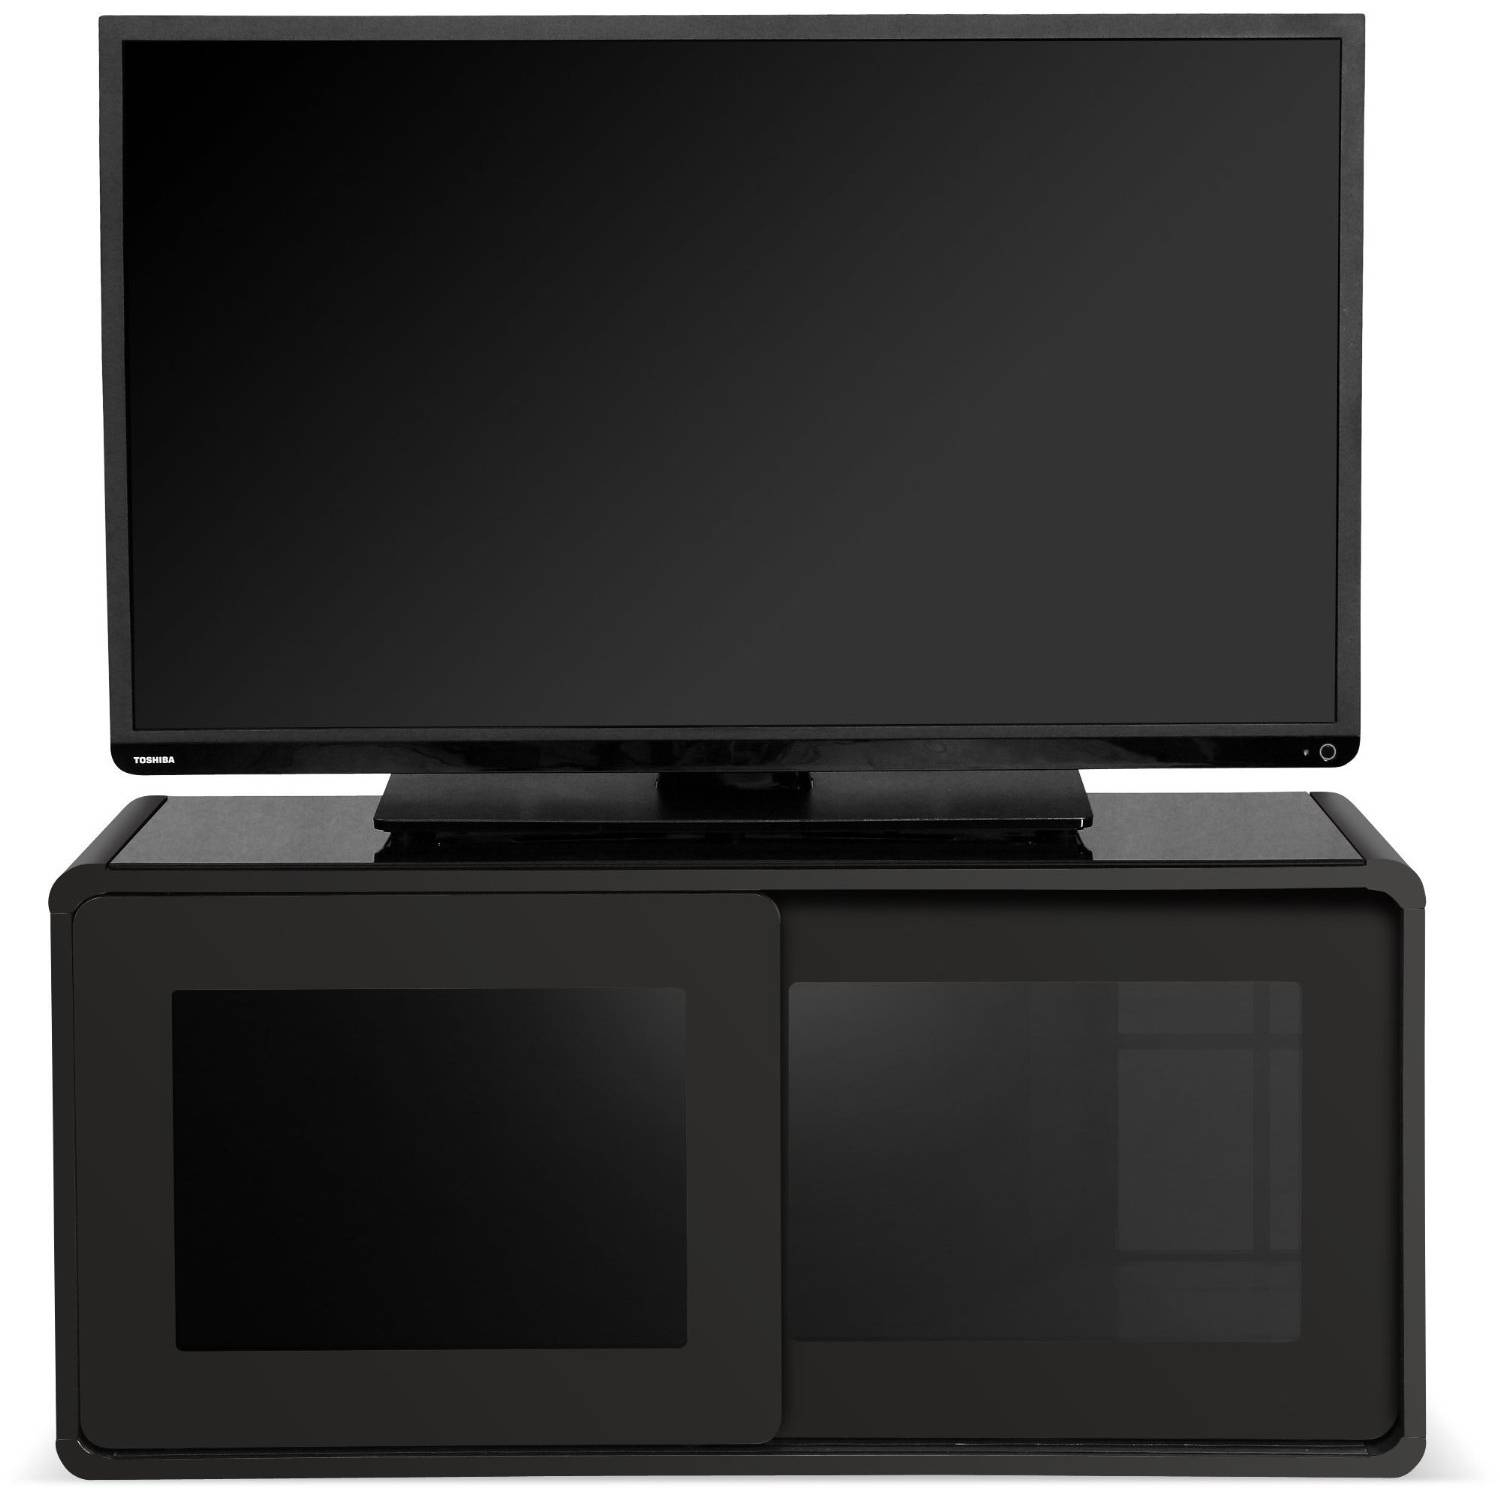 Centurion Supports Nora Gloss Black With Beam-Thru Glass Sliding regarding Beam Thru Tv Cabinet (Image 3 of 15)